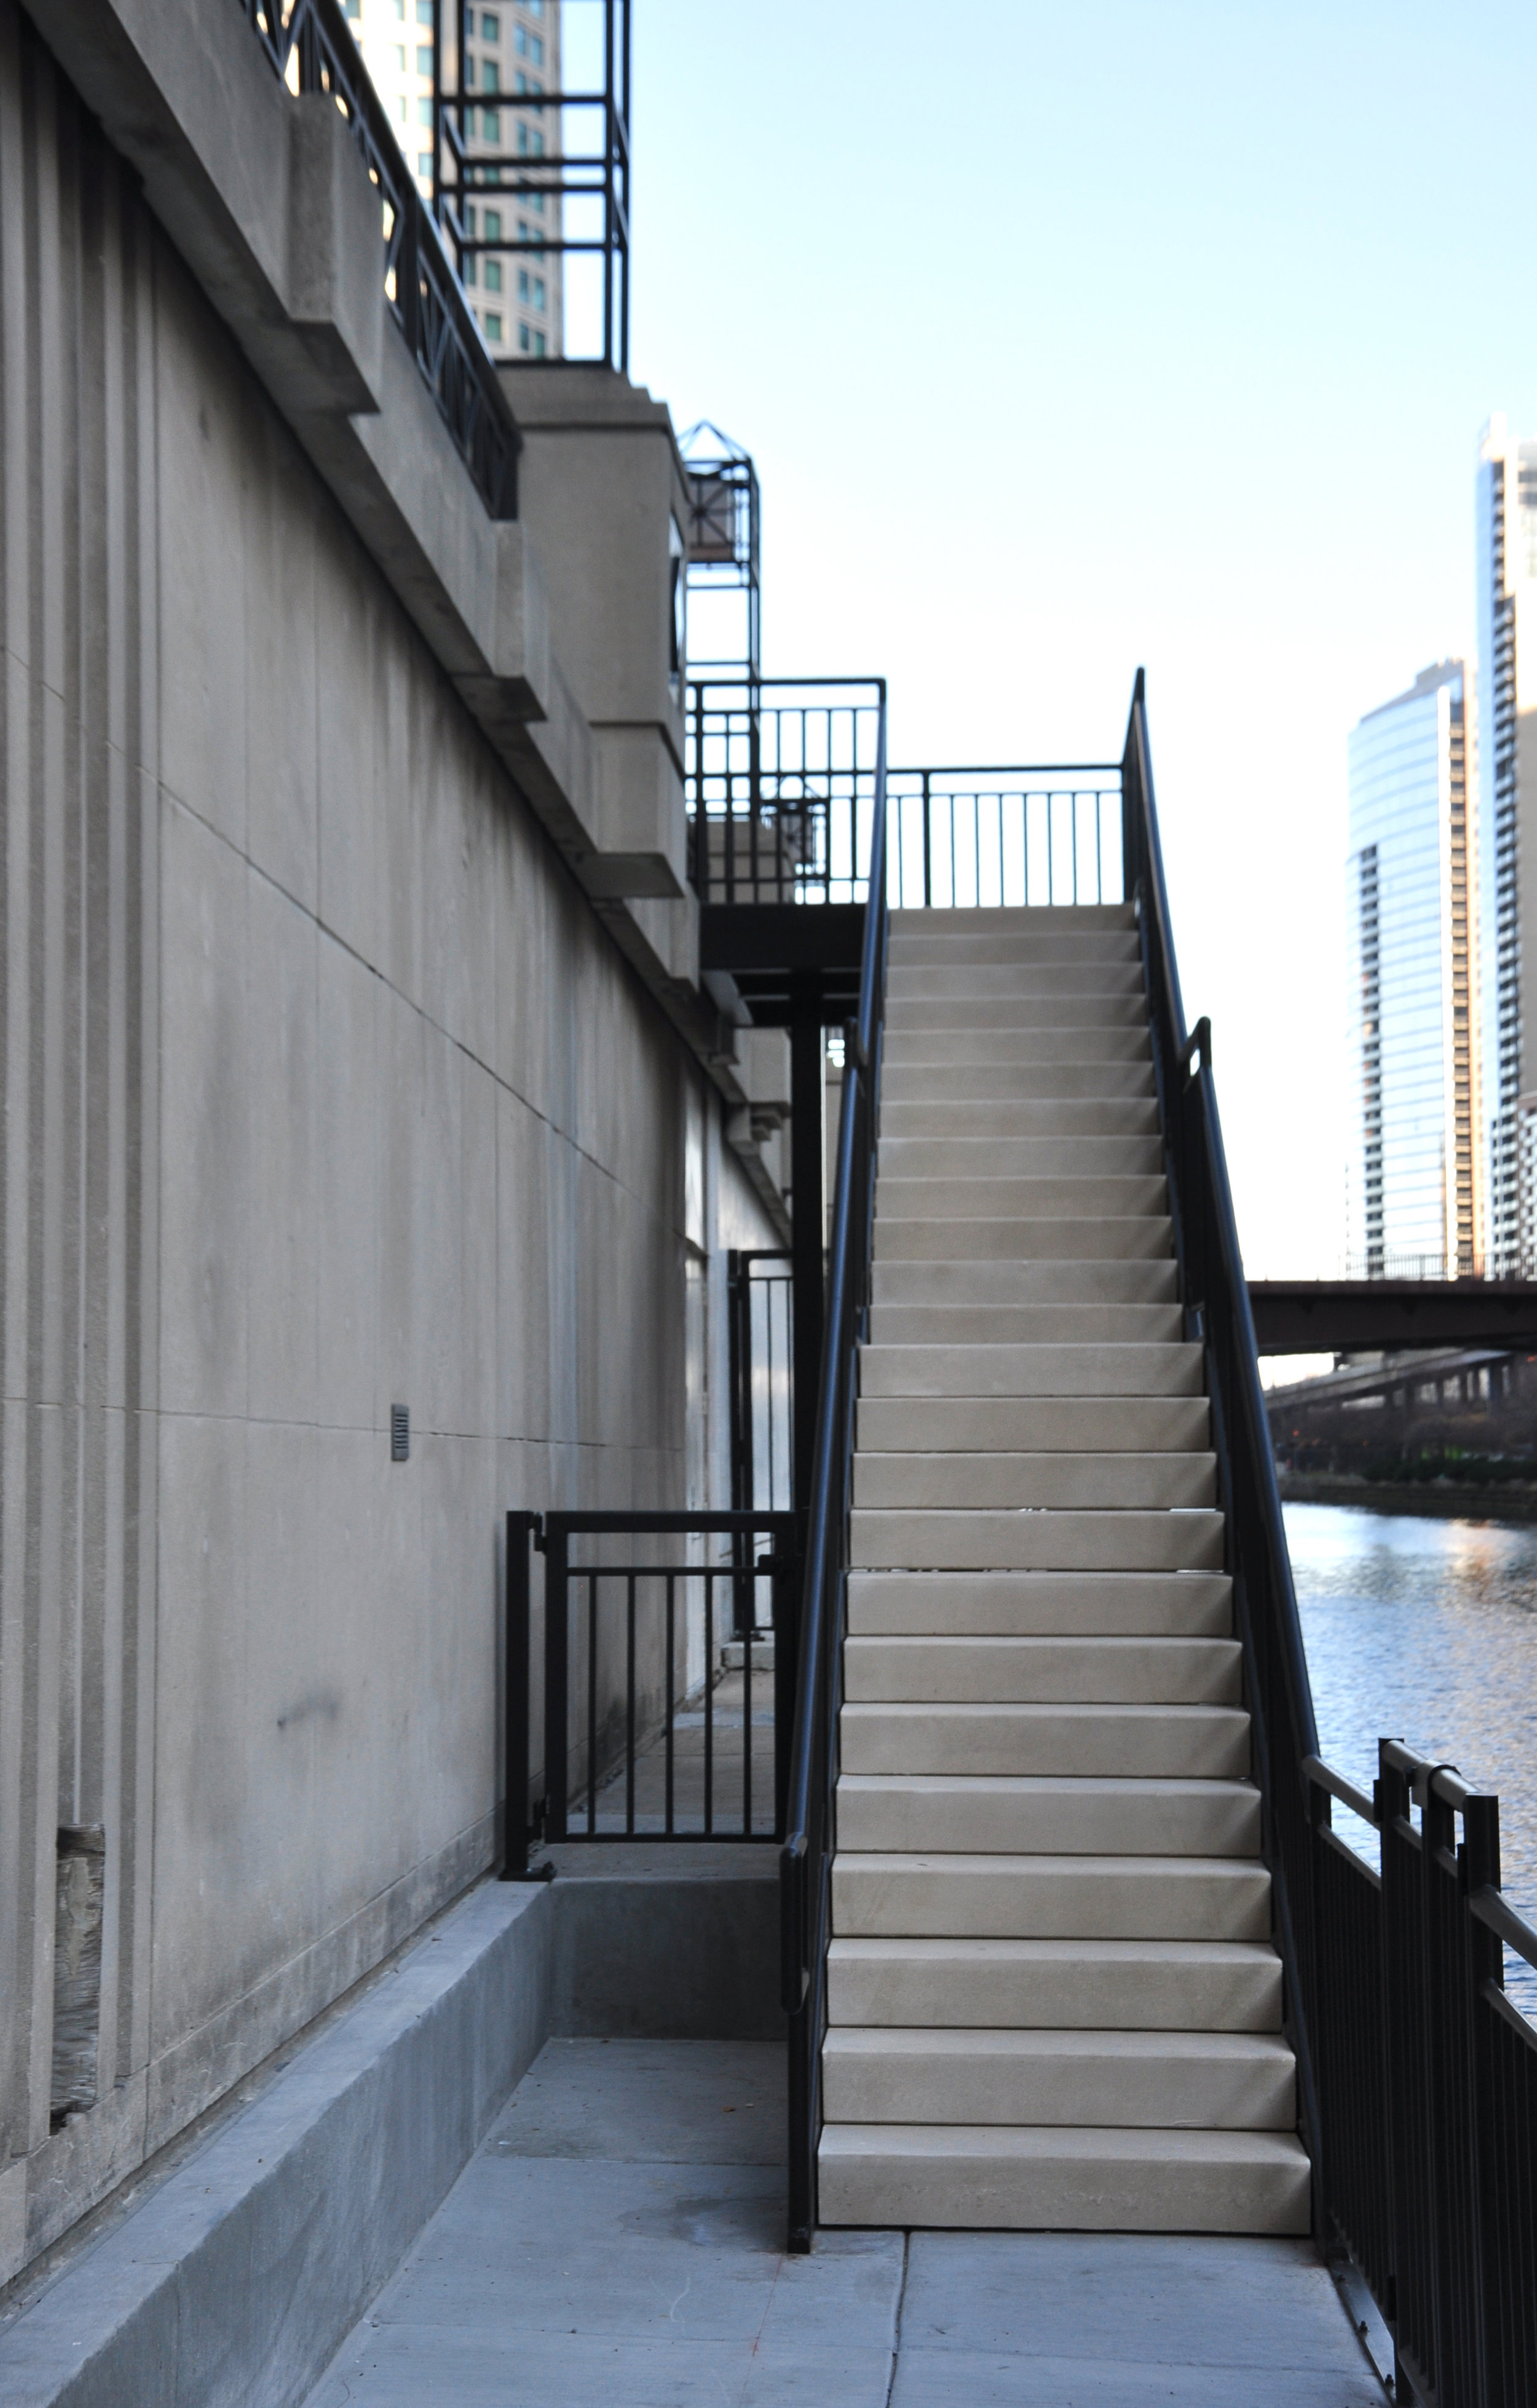 Project completed: new stairs at Michigan Avenue and the Chicago River